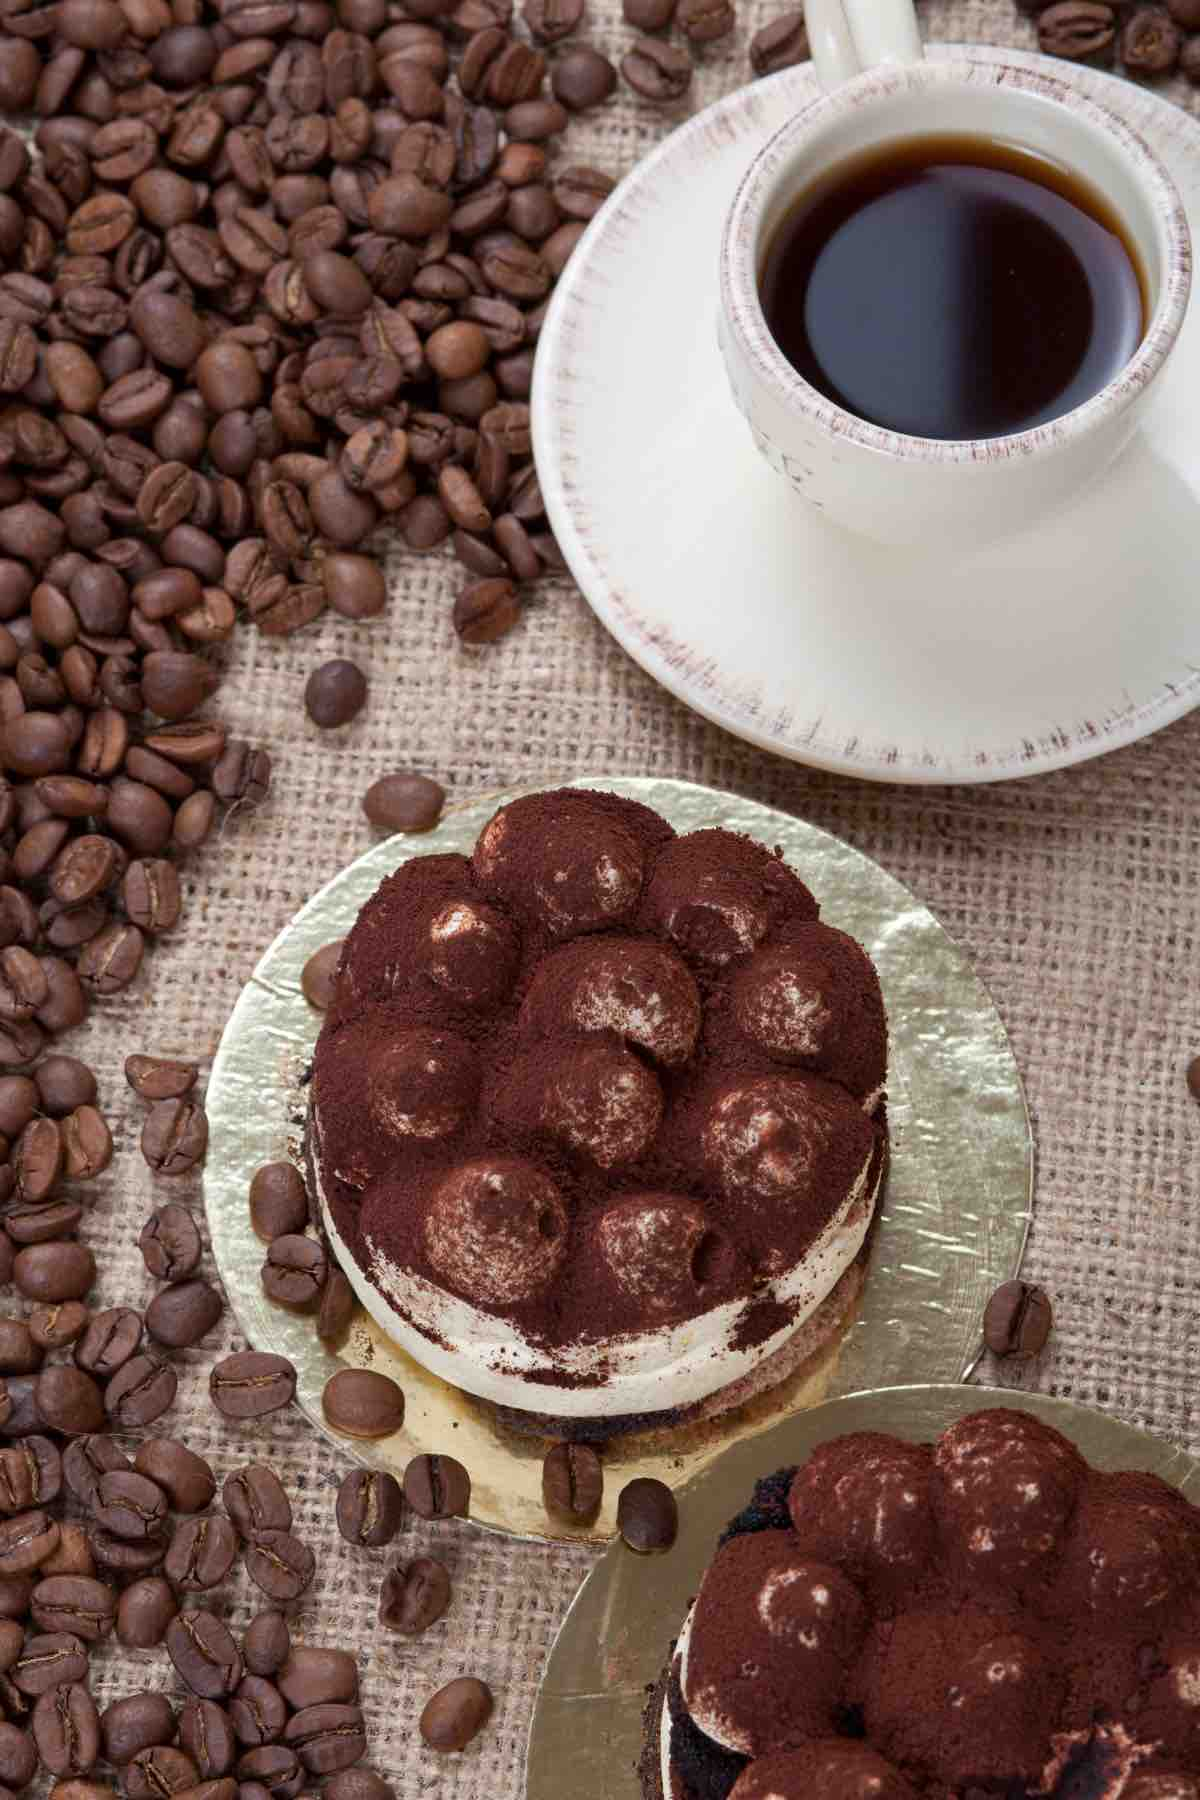 These 20 Best Coffee and Dessert Recipes are easy to create at home and are so delicious that you will want to try them all. From the heavenly mocha fudge cake to the mouth-watering coffee cake muffins, these desserts are perfect for a Sunday morning brunch or an afternoon tea party.